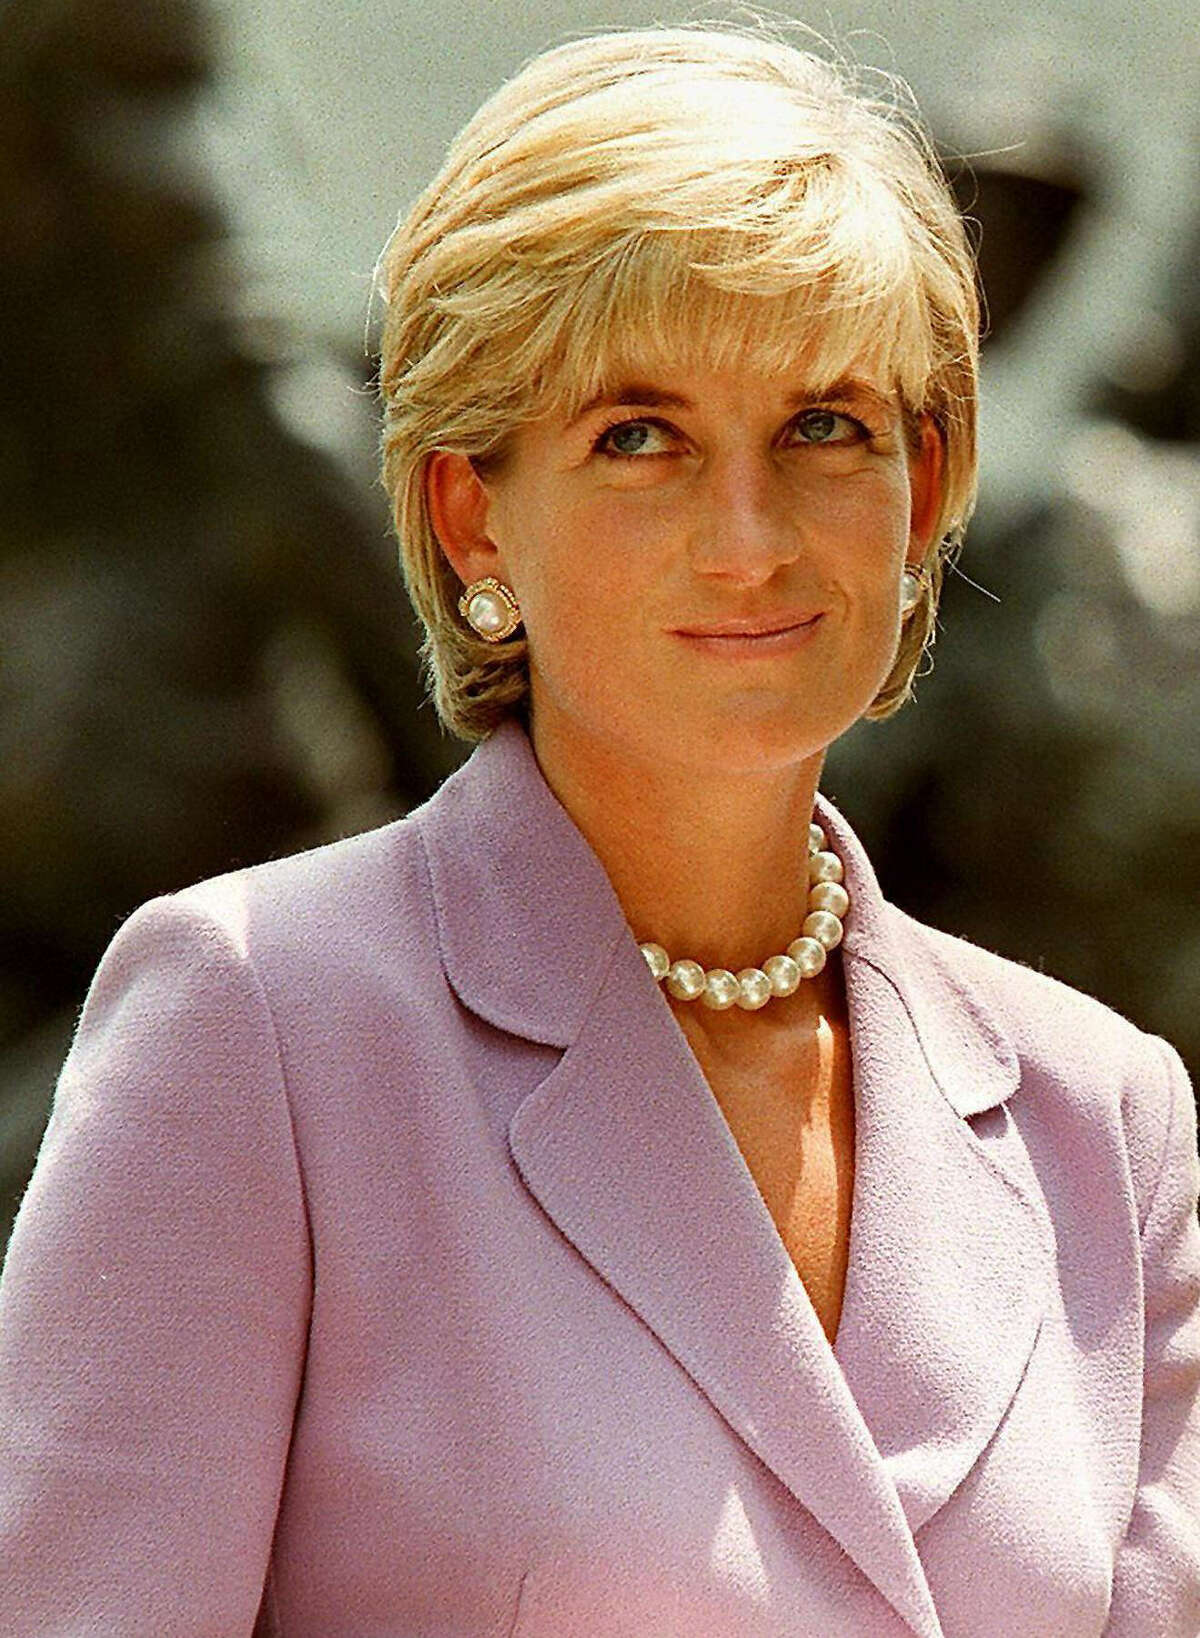 Diana, princess of Wales, died 16 years ago in a car accident in Paris.